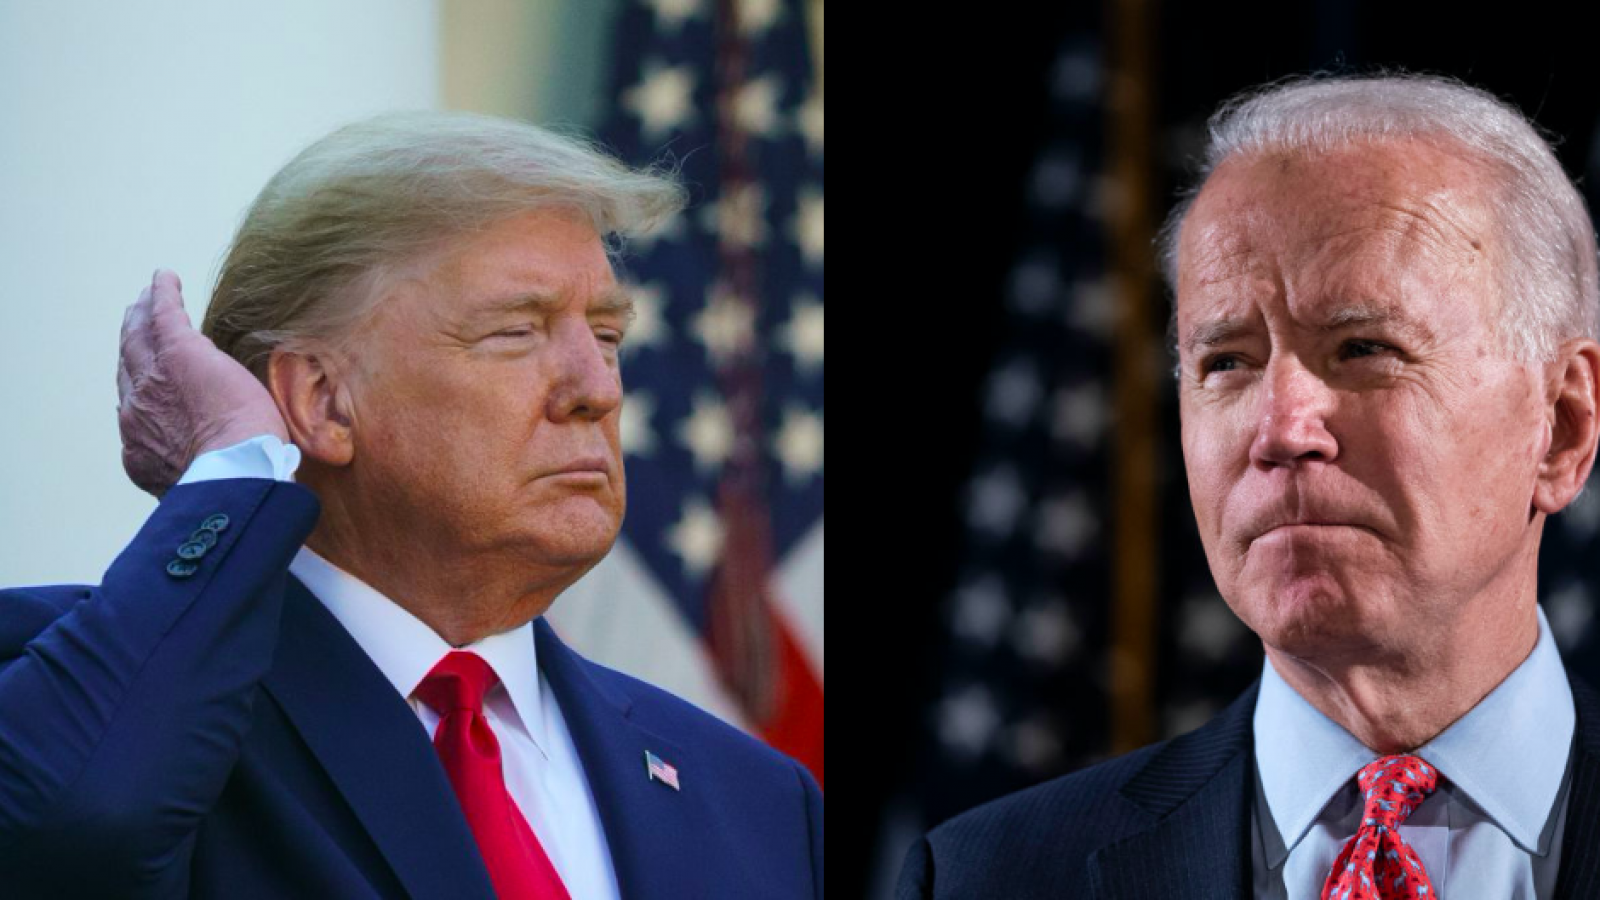 What the Polls Say About a Donald Trump vs Joe Biden Presidential ...